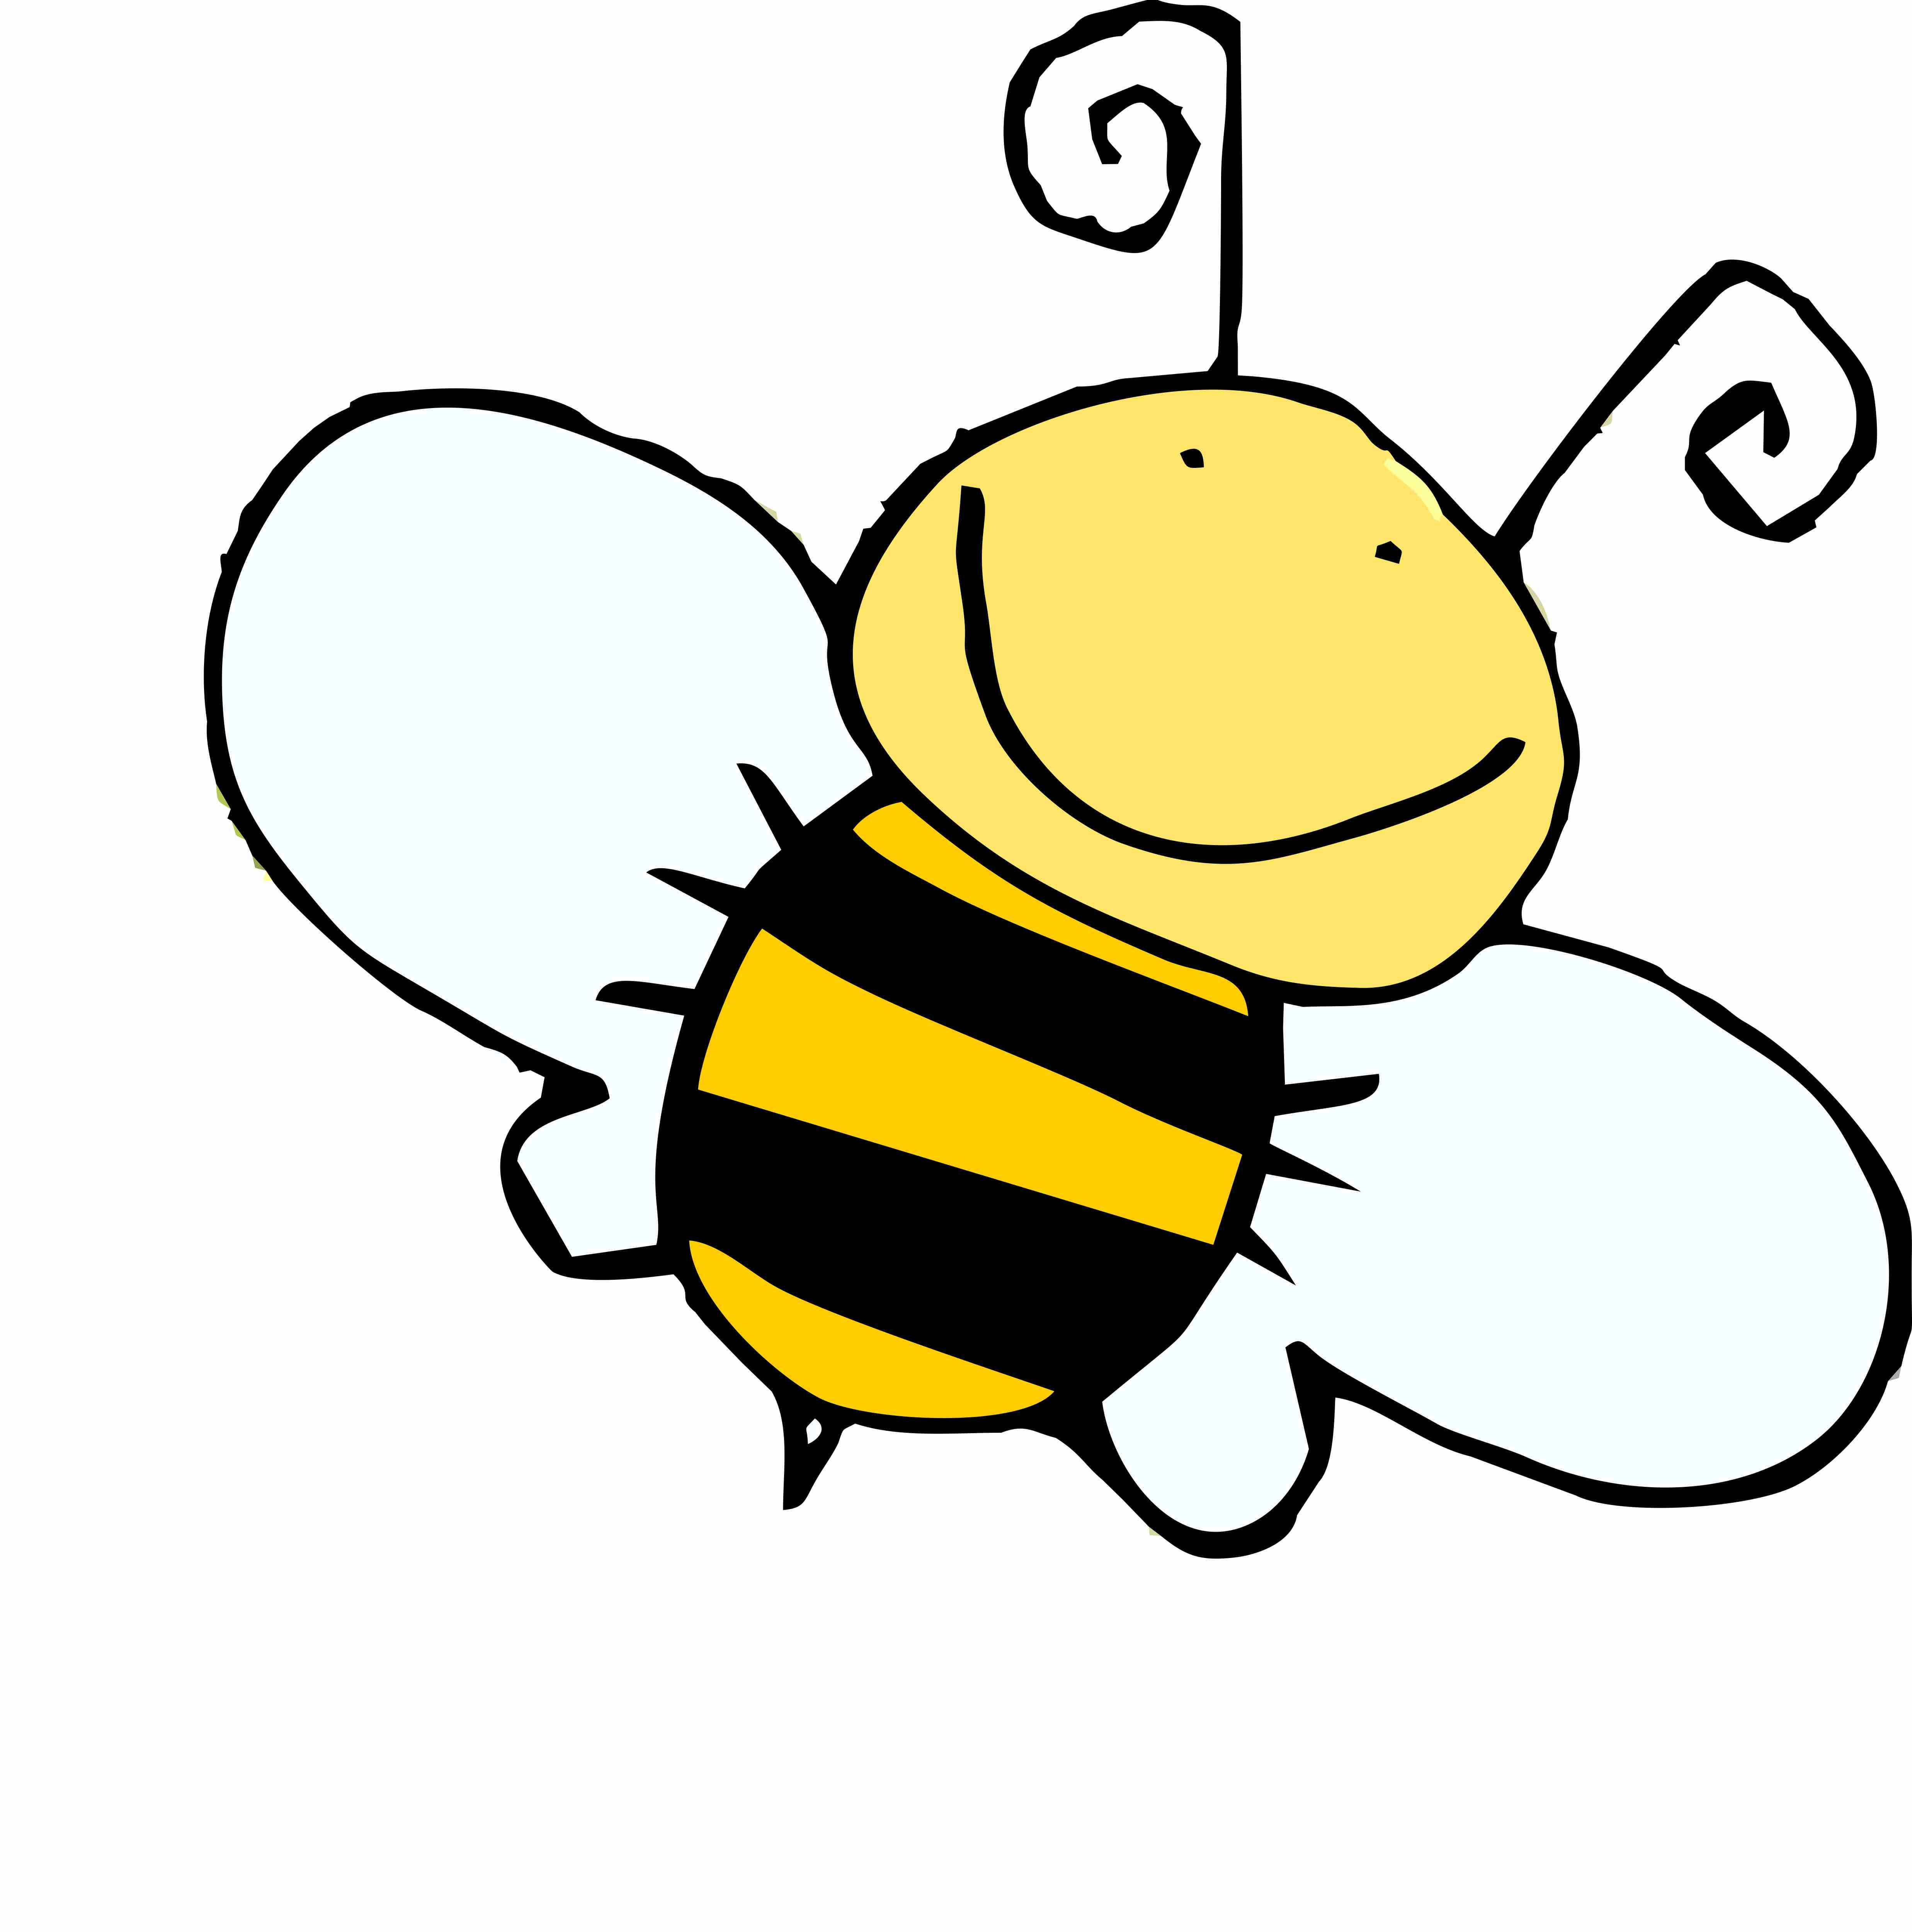 Bee clipart laughing png free stock Cartoon bee clipart - ClipartFest png free stock